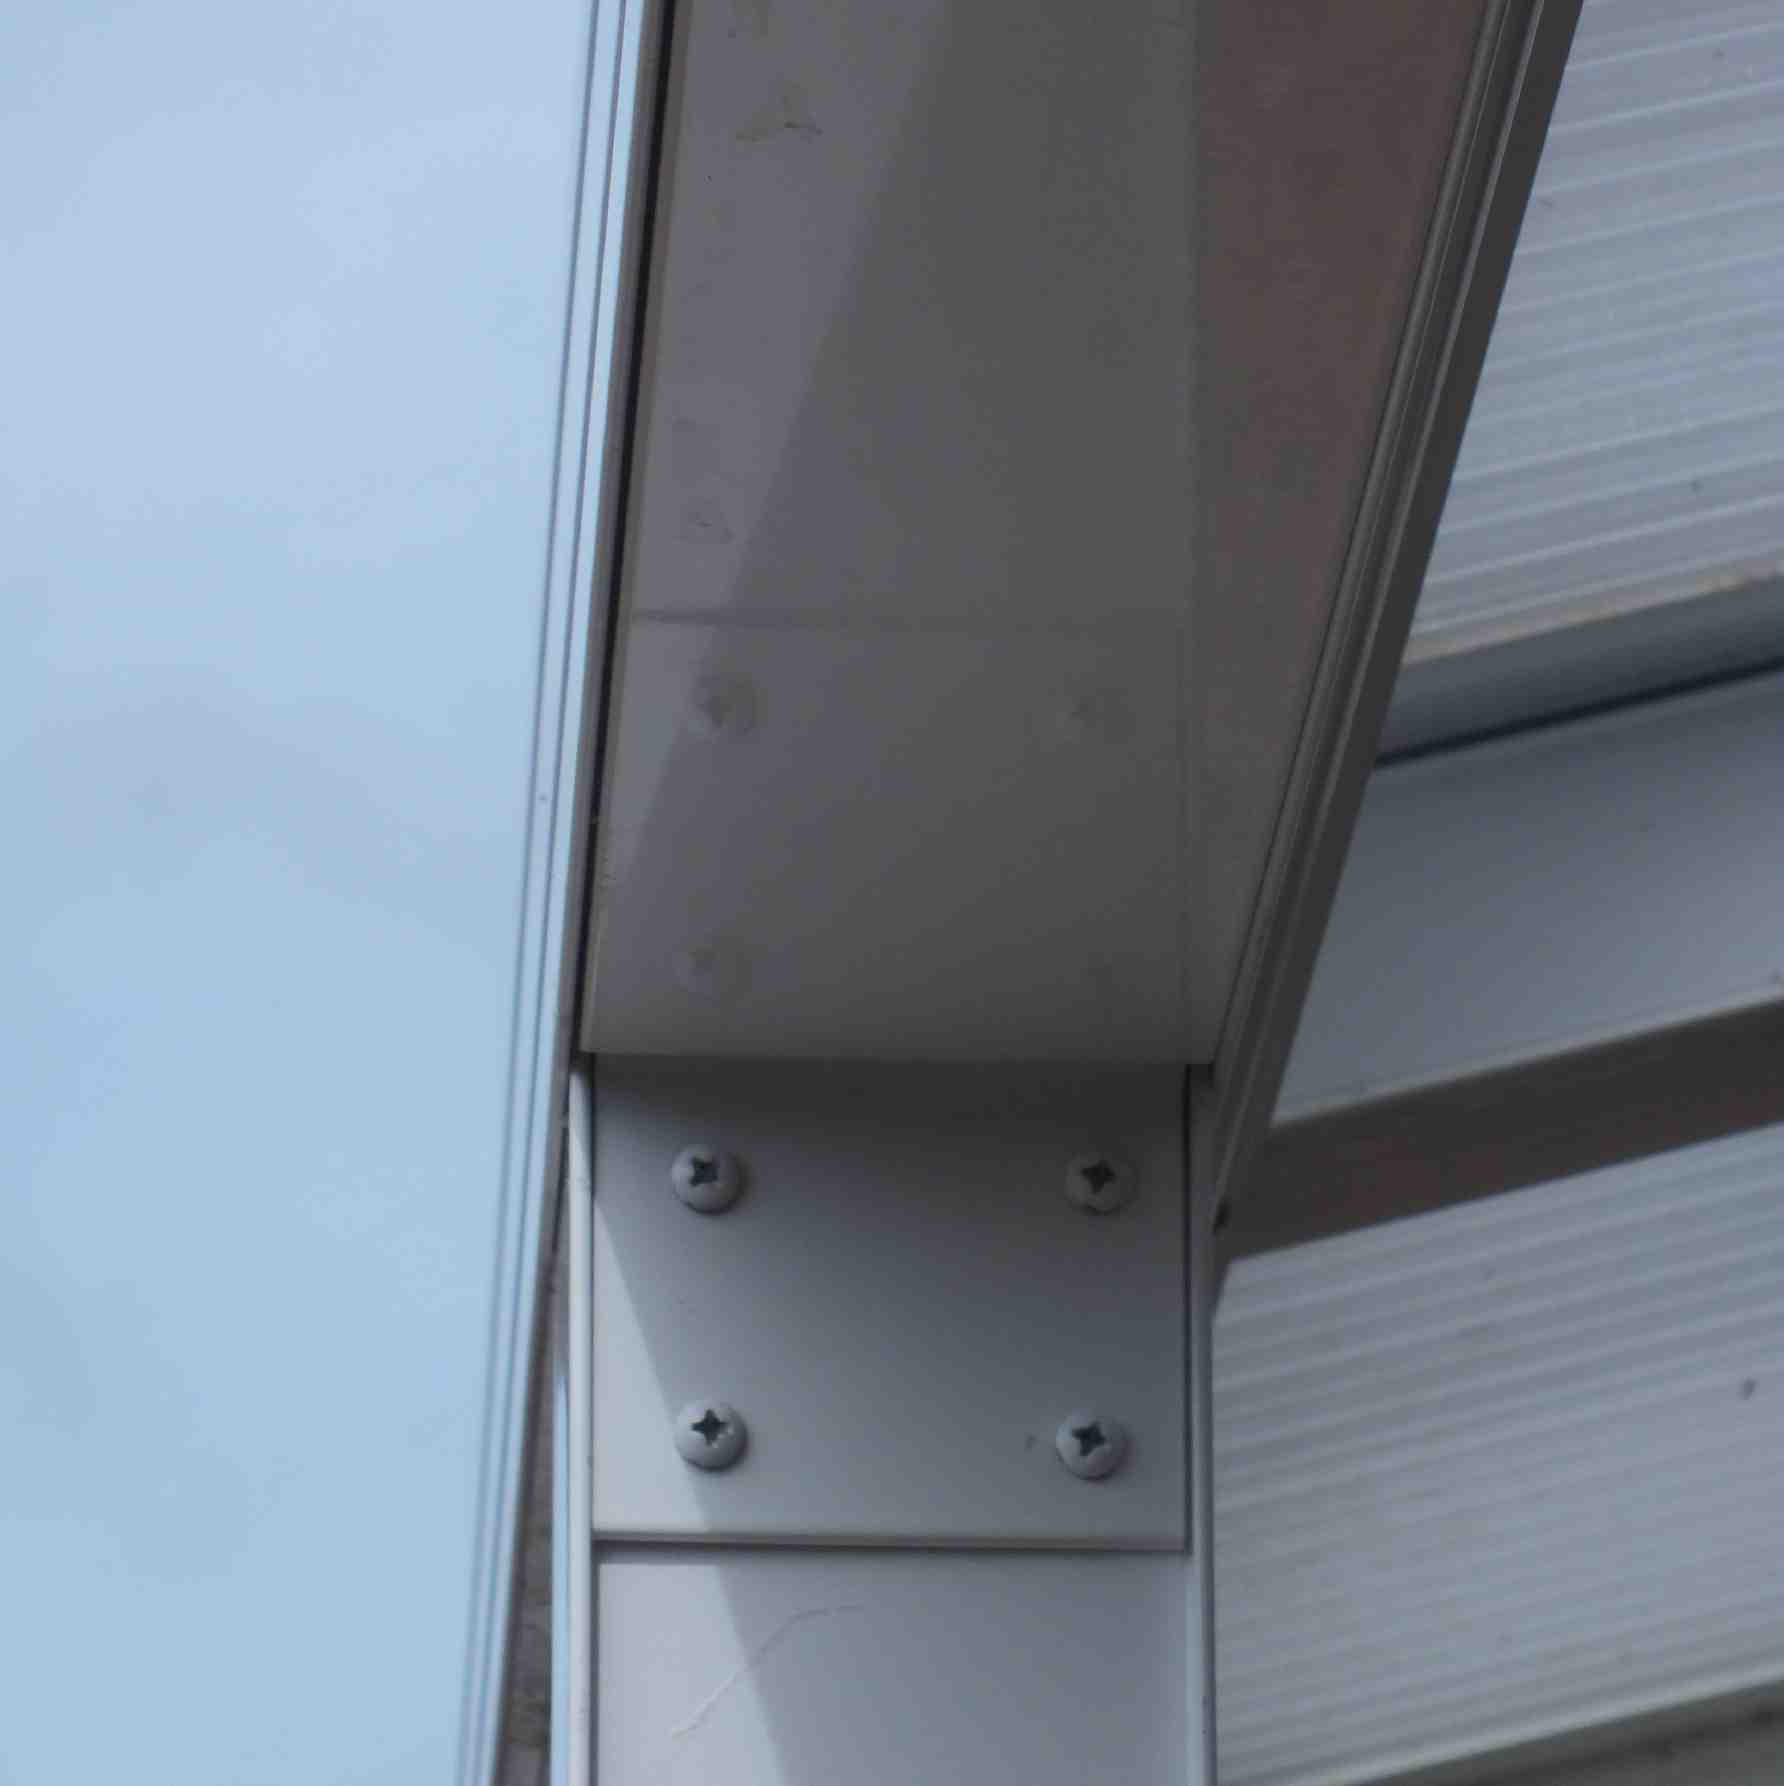 Affordable Omega Verandah with 6mm Glass Clear Plate Polycarbonate Glazing - 7.0m (W) x 2.0m (P), (4) Supporting Posts